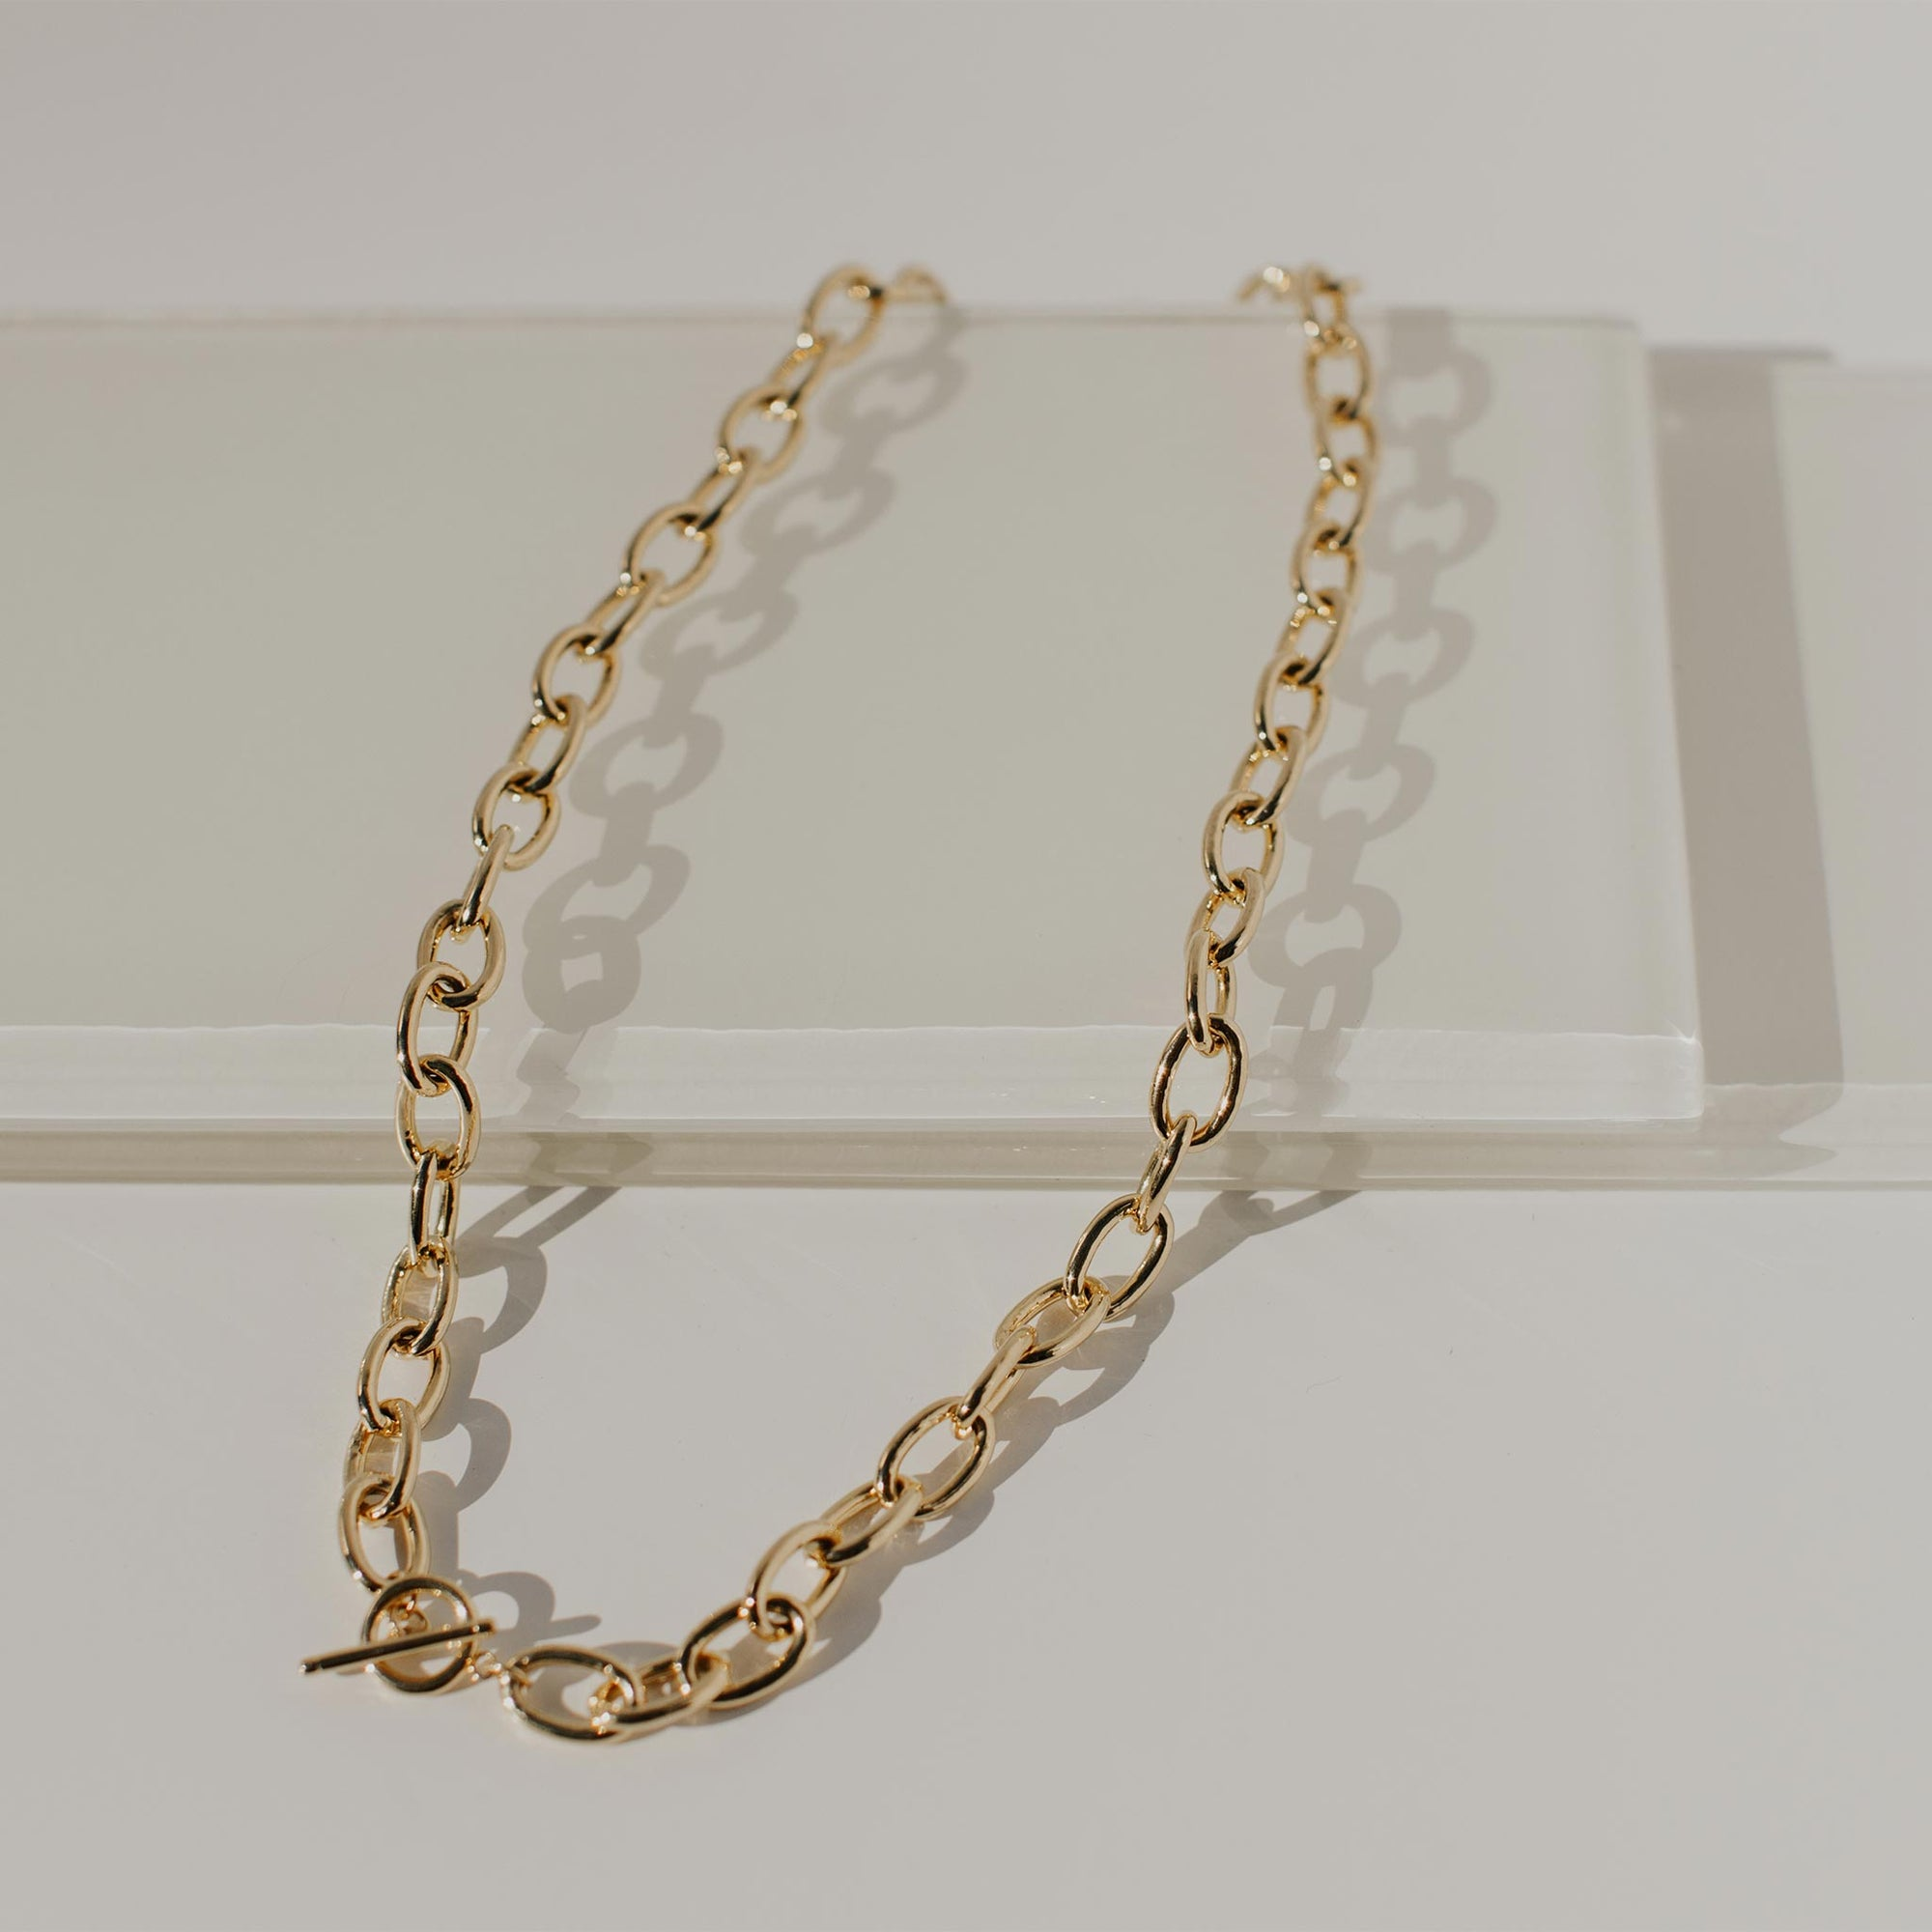 Stinson Chunky Chain Necklace - Evertess Jewelry